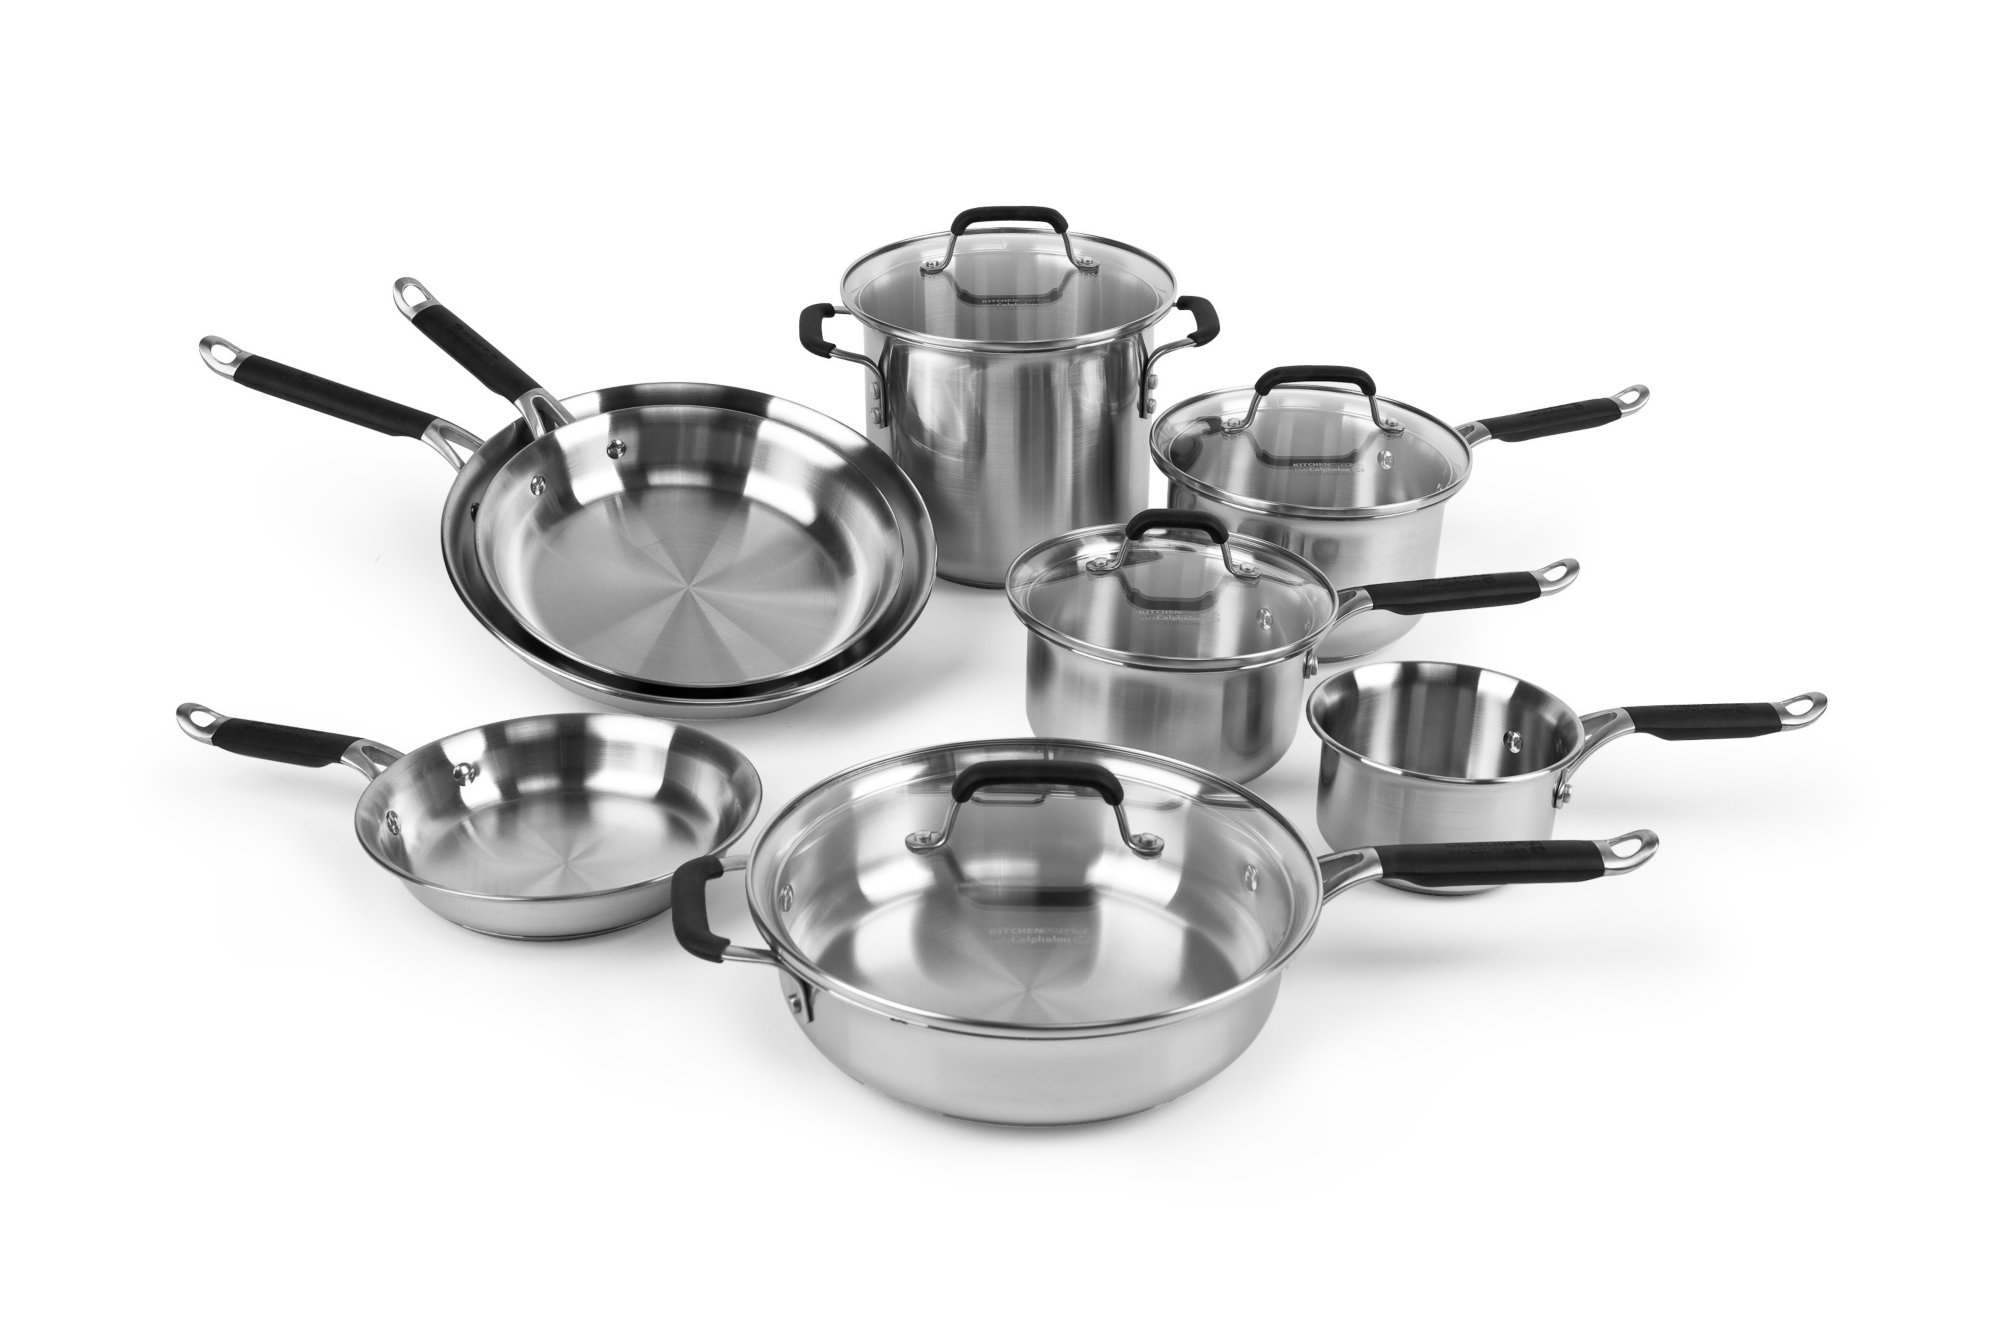 calphalon kitchen essentials stainless steel mini pendants for search results